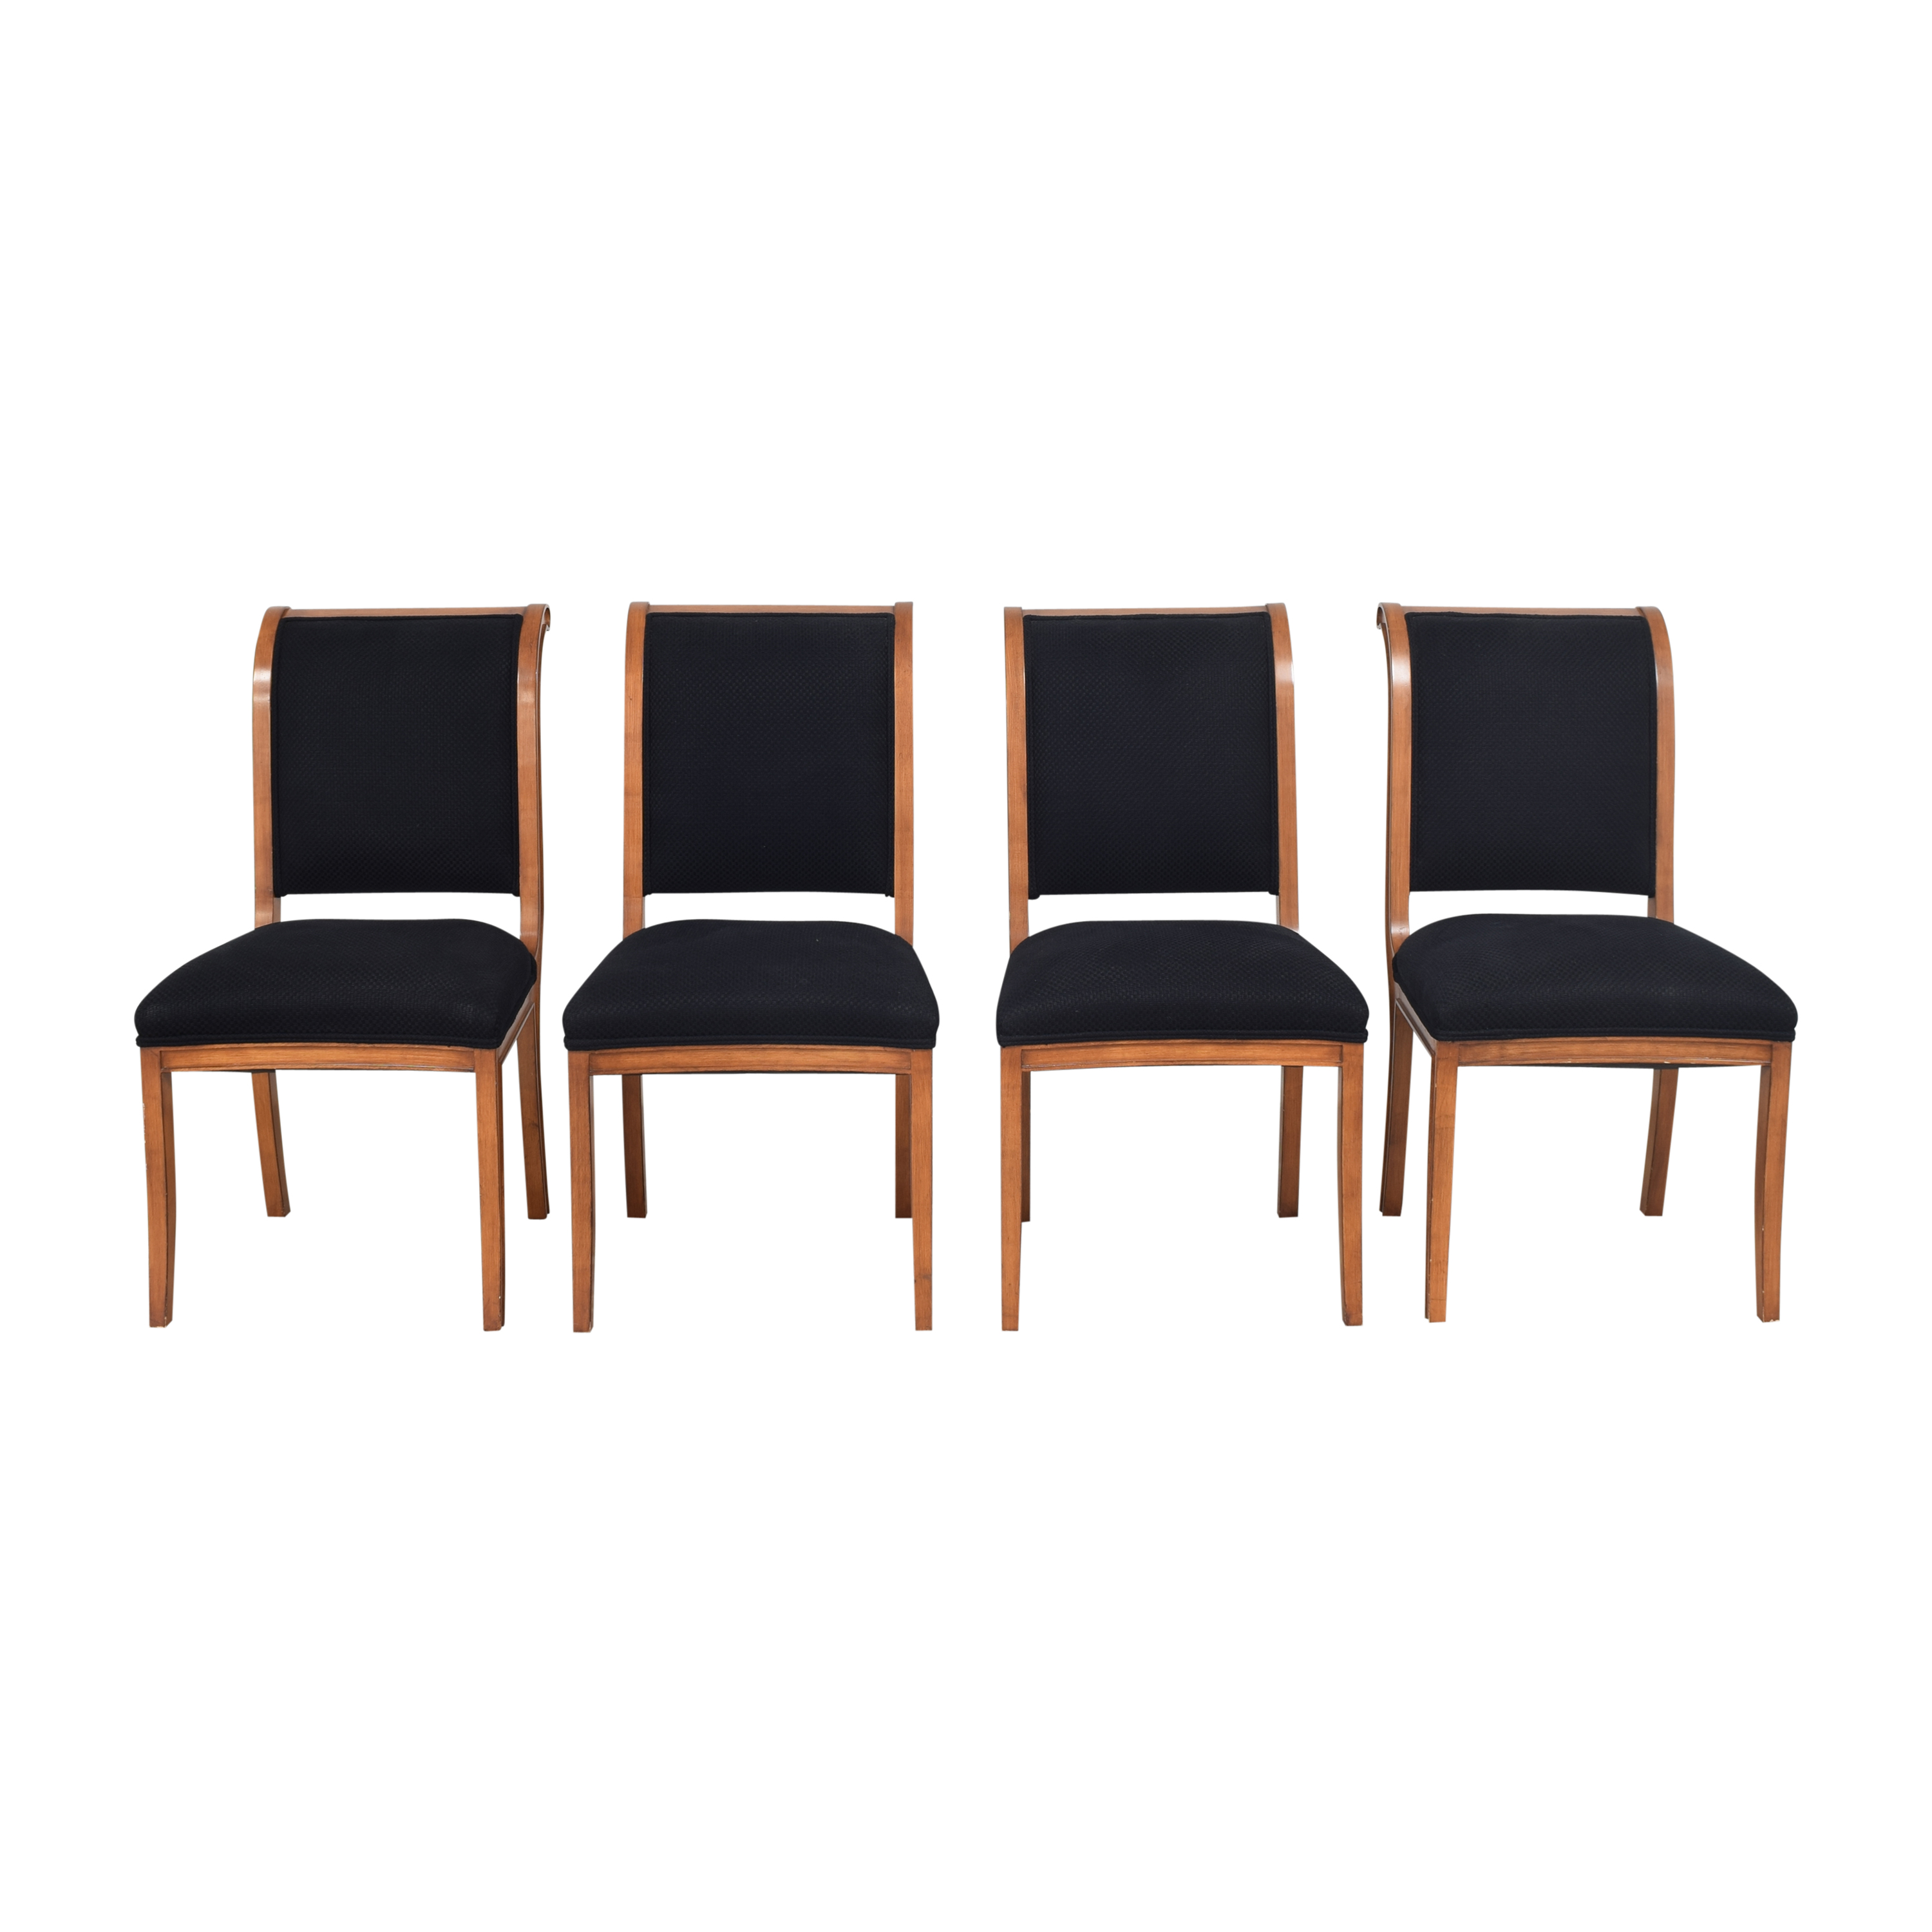 Custom Upholstered Dining Chairs ct